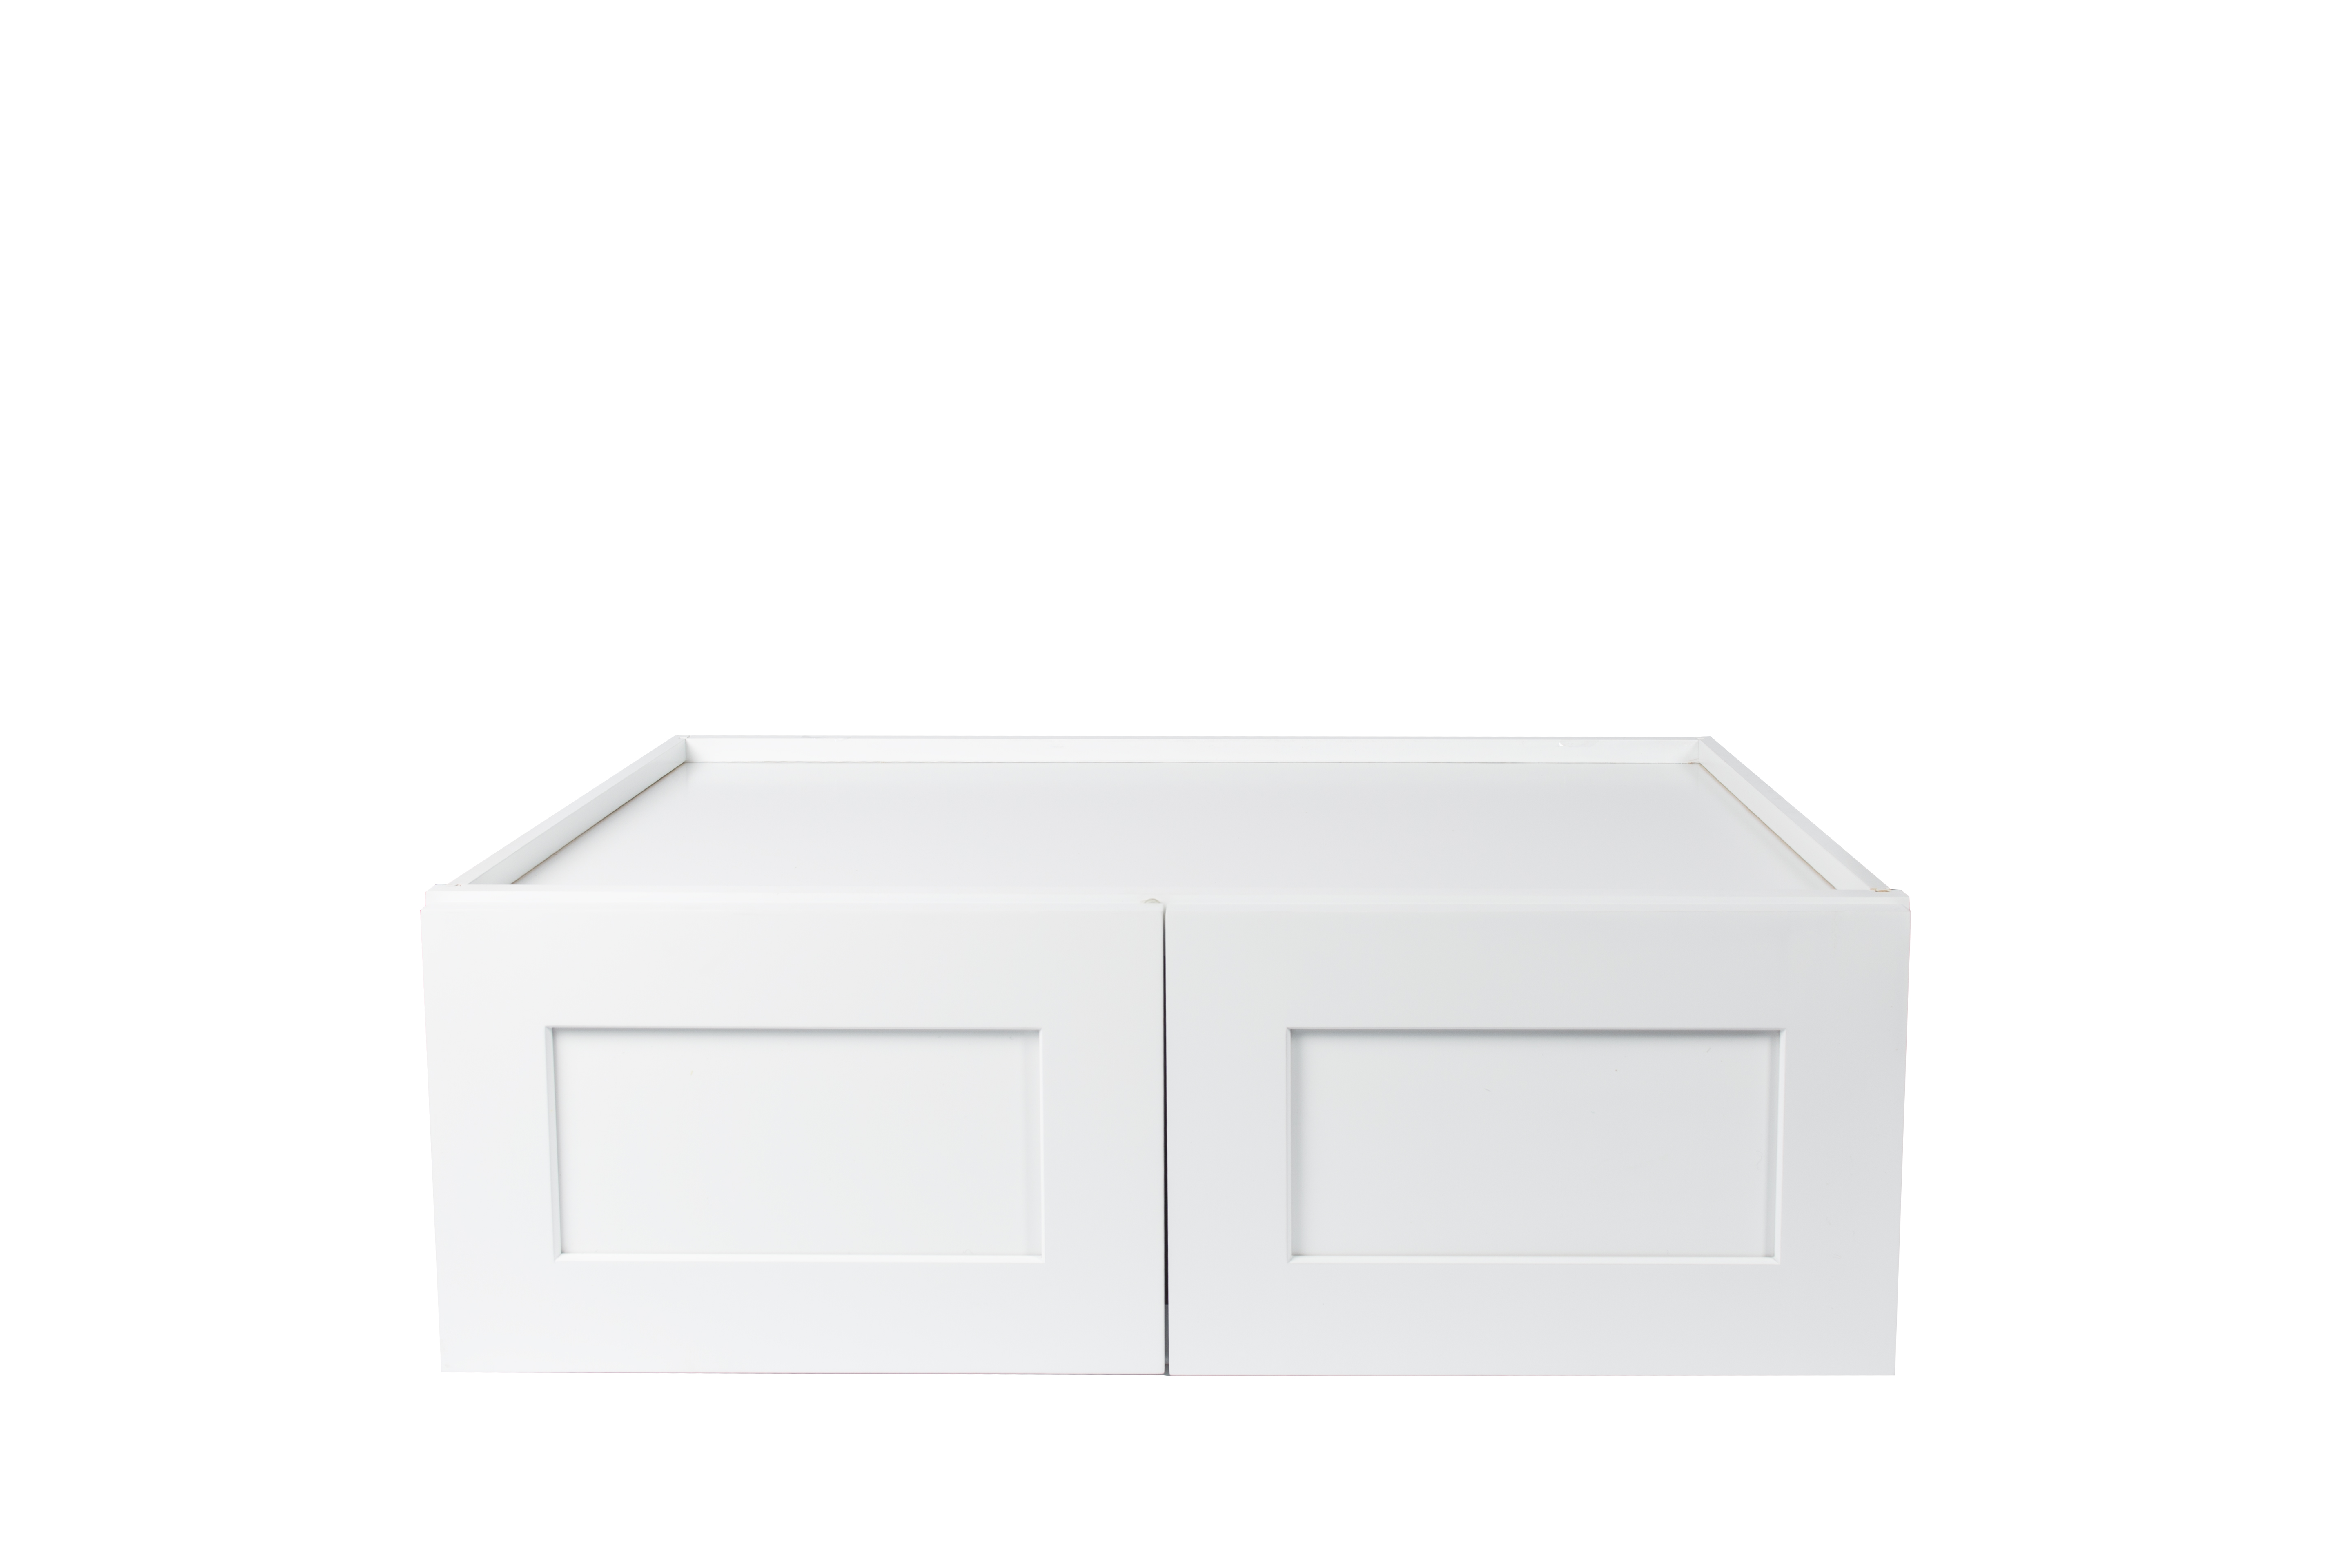 Ready to Assemble 36x18x24 in. Shaker High Double Door Wall Cabinet in White